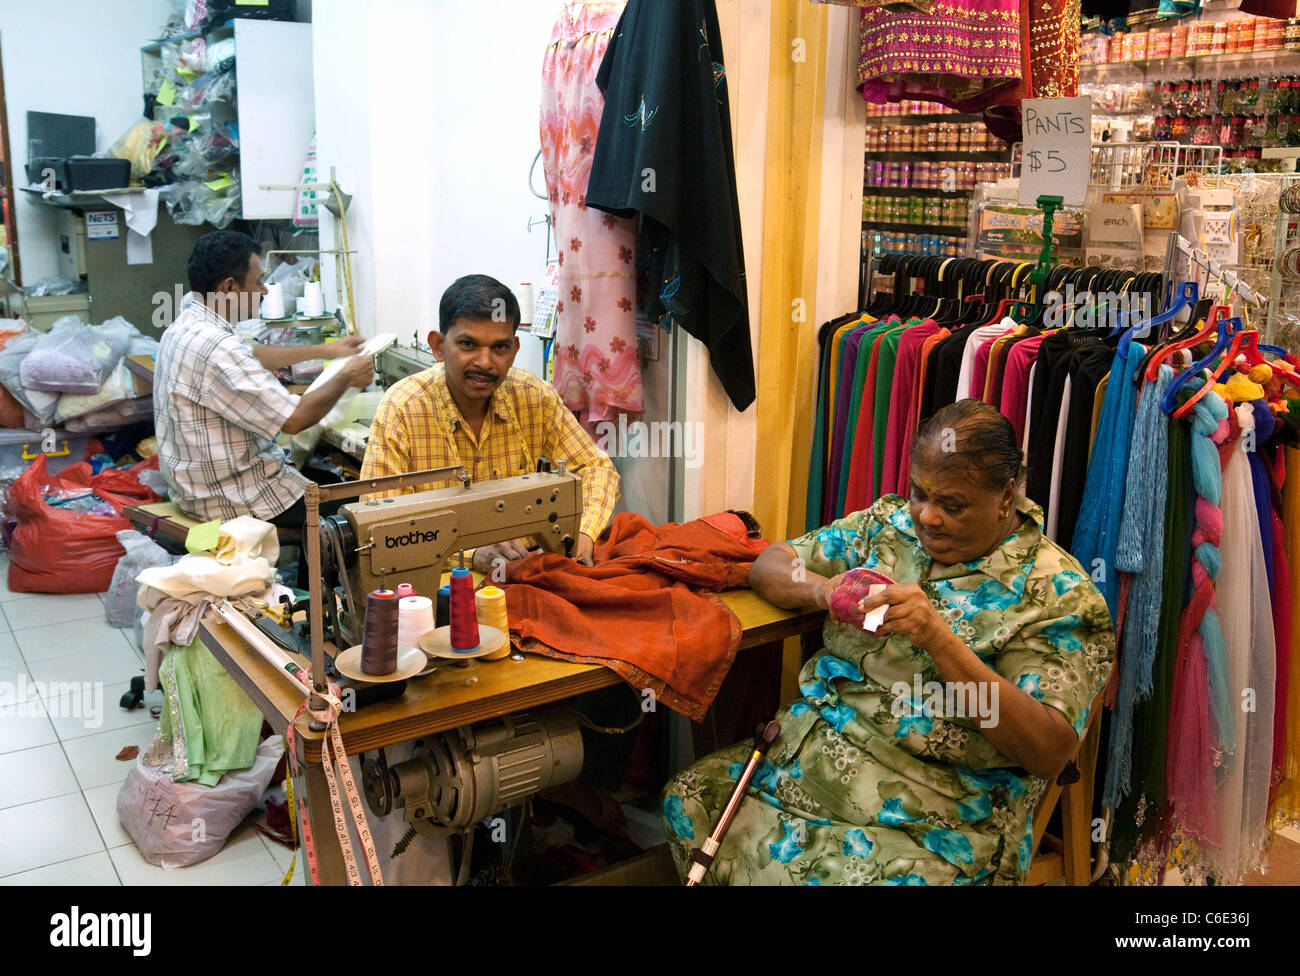 48f49c9021 Clothes makers in an Indian clothes shop, the indoor Tekka market, Little  India,